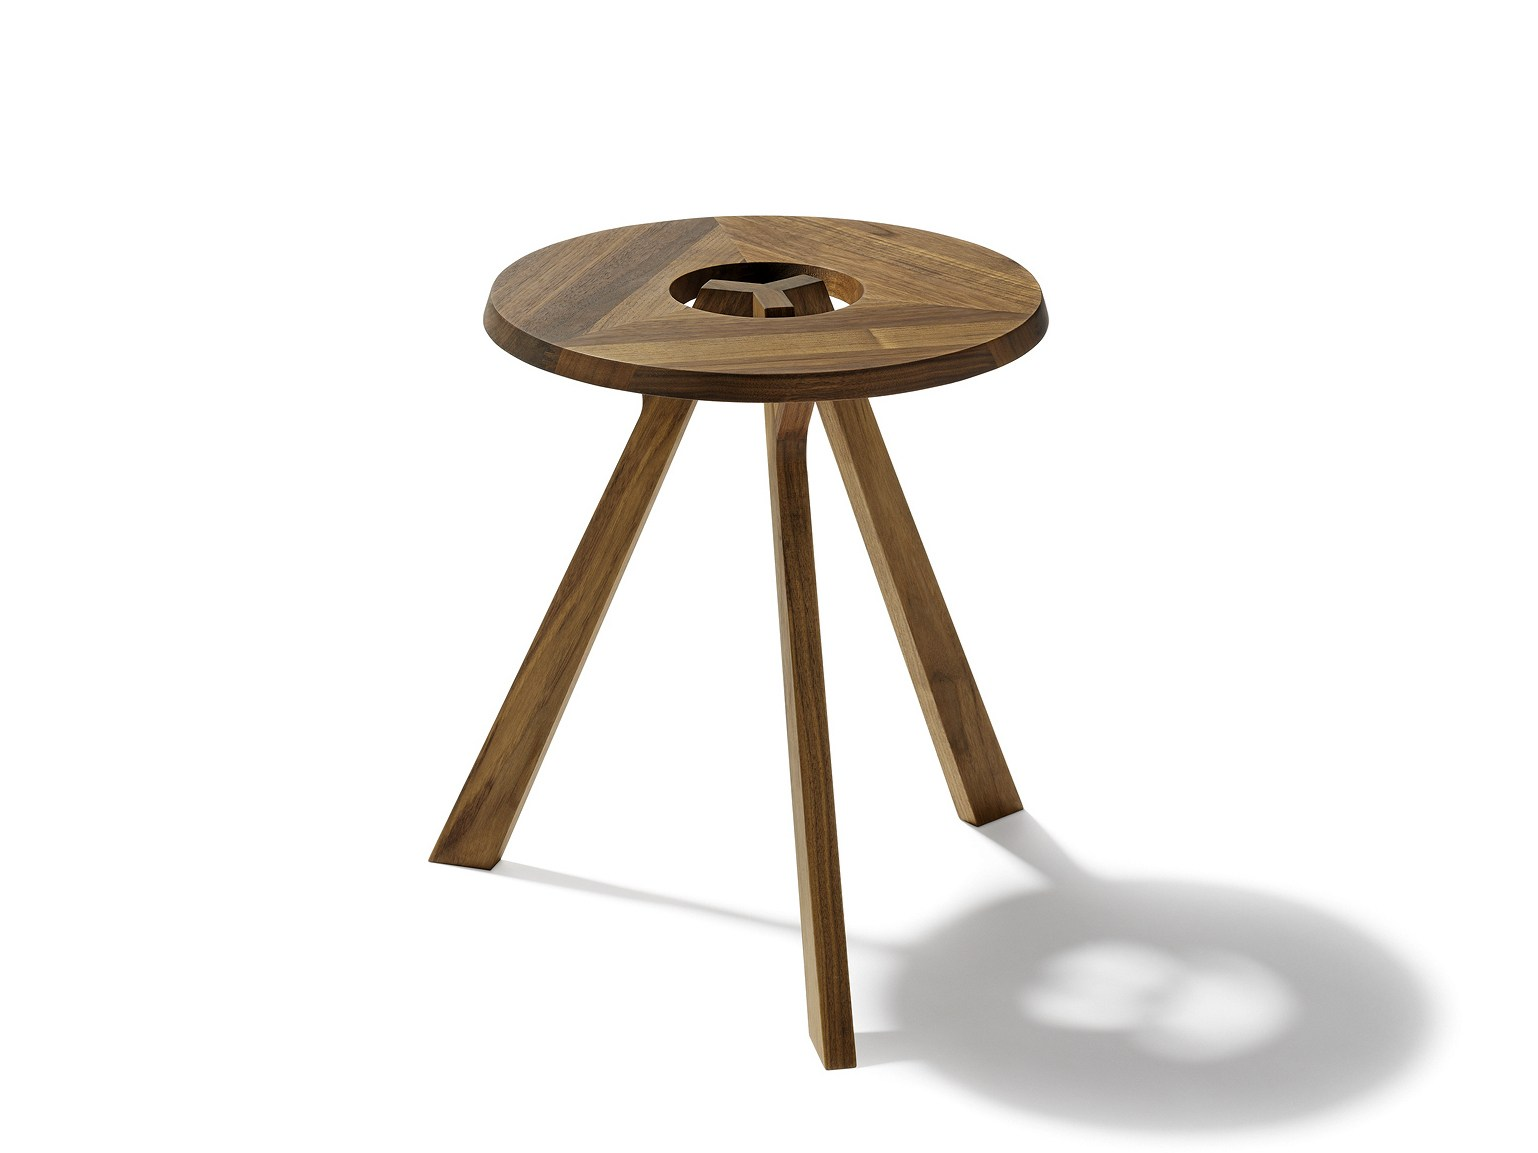 Low Wooden Coffee Table Treeo Treeo Collection By Team 7 Nat Rlich Wohnen Design Jacob Strobel